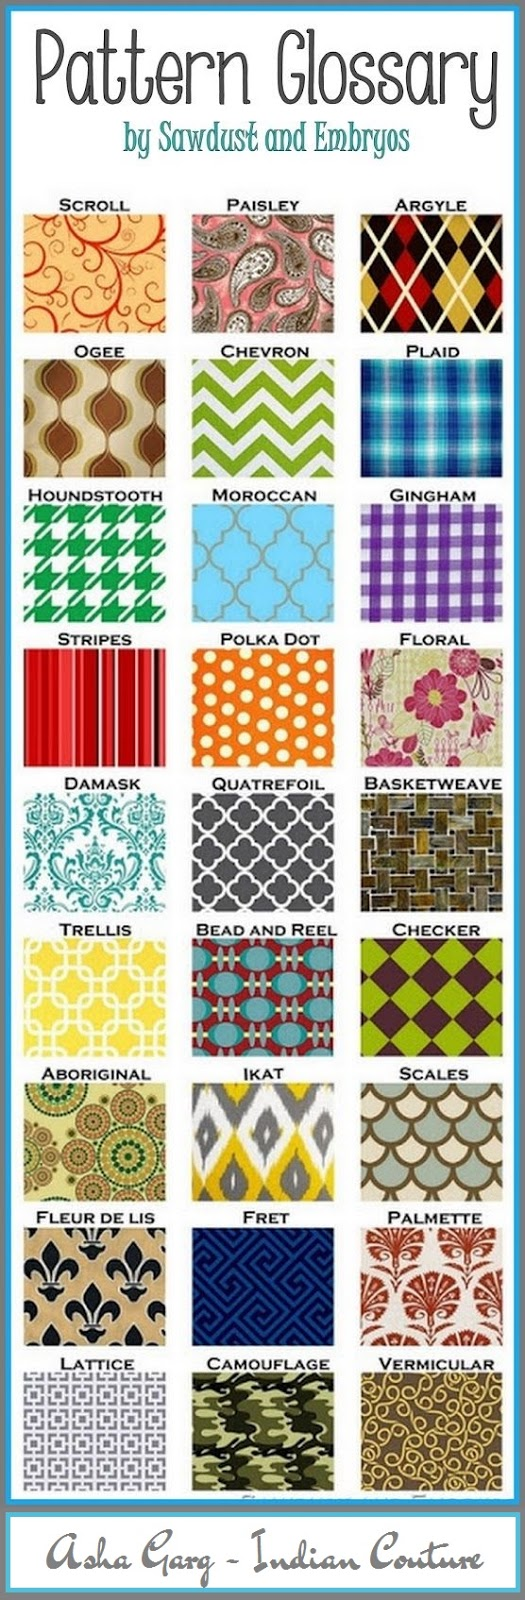 Graphic Design Patterns & Textures For Fabrics